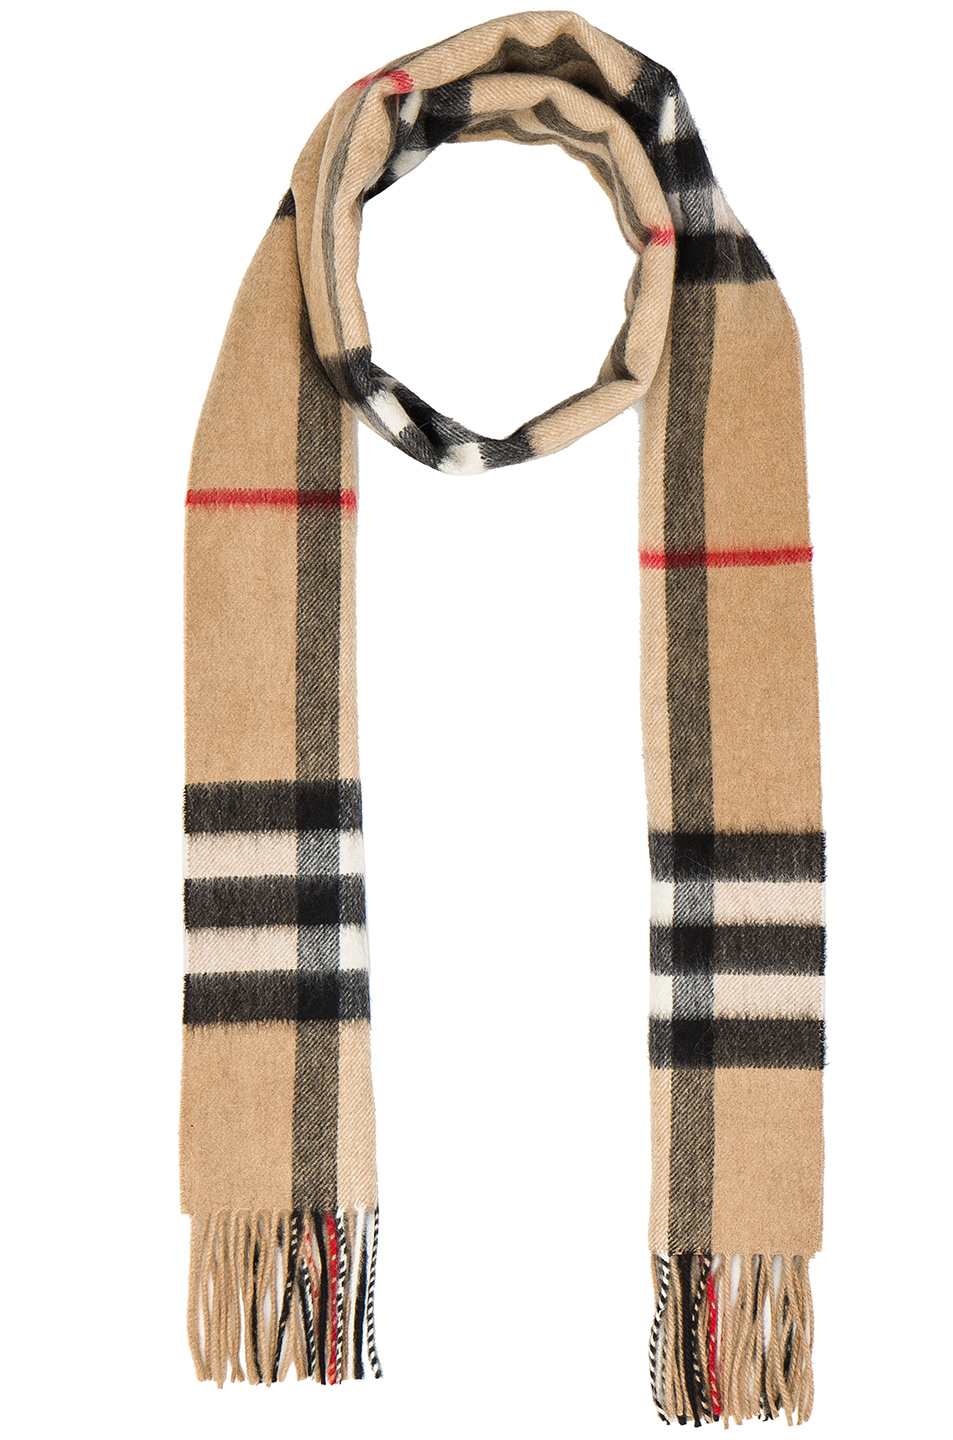 Burberry Giant Check Cashmere Scarf In Neutrals, Checkered & Plaid. In Camel